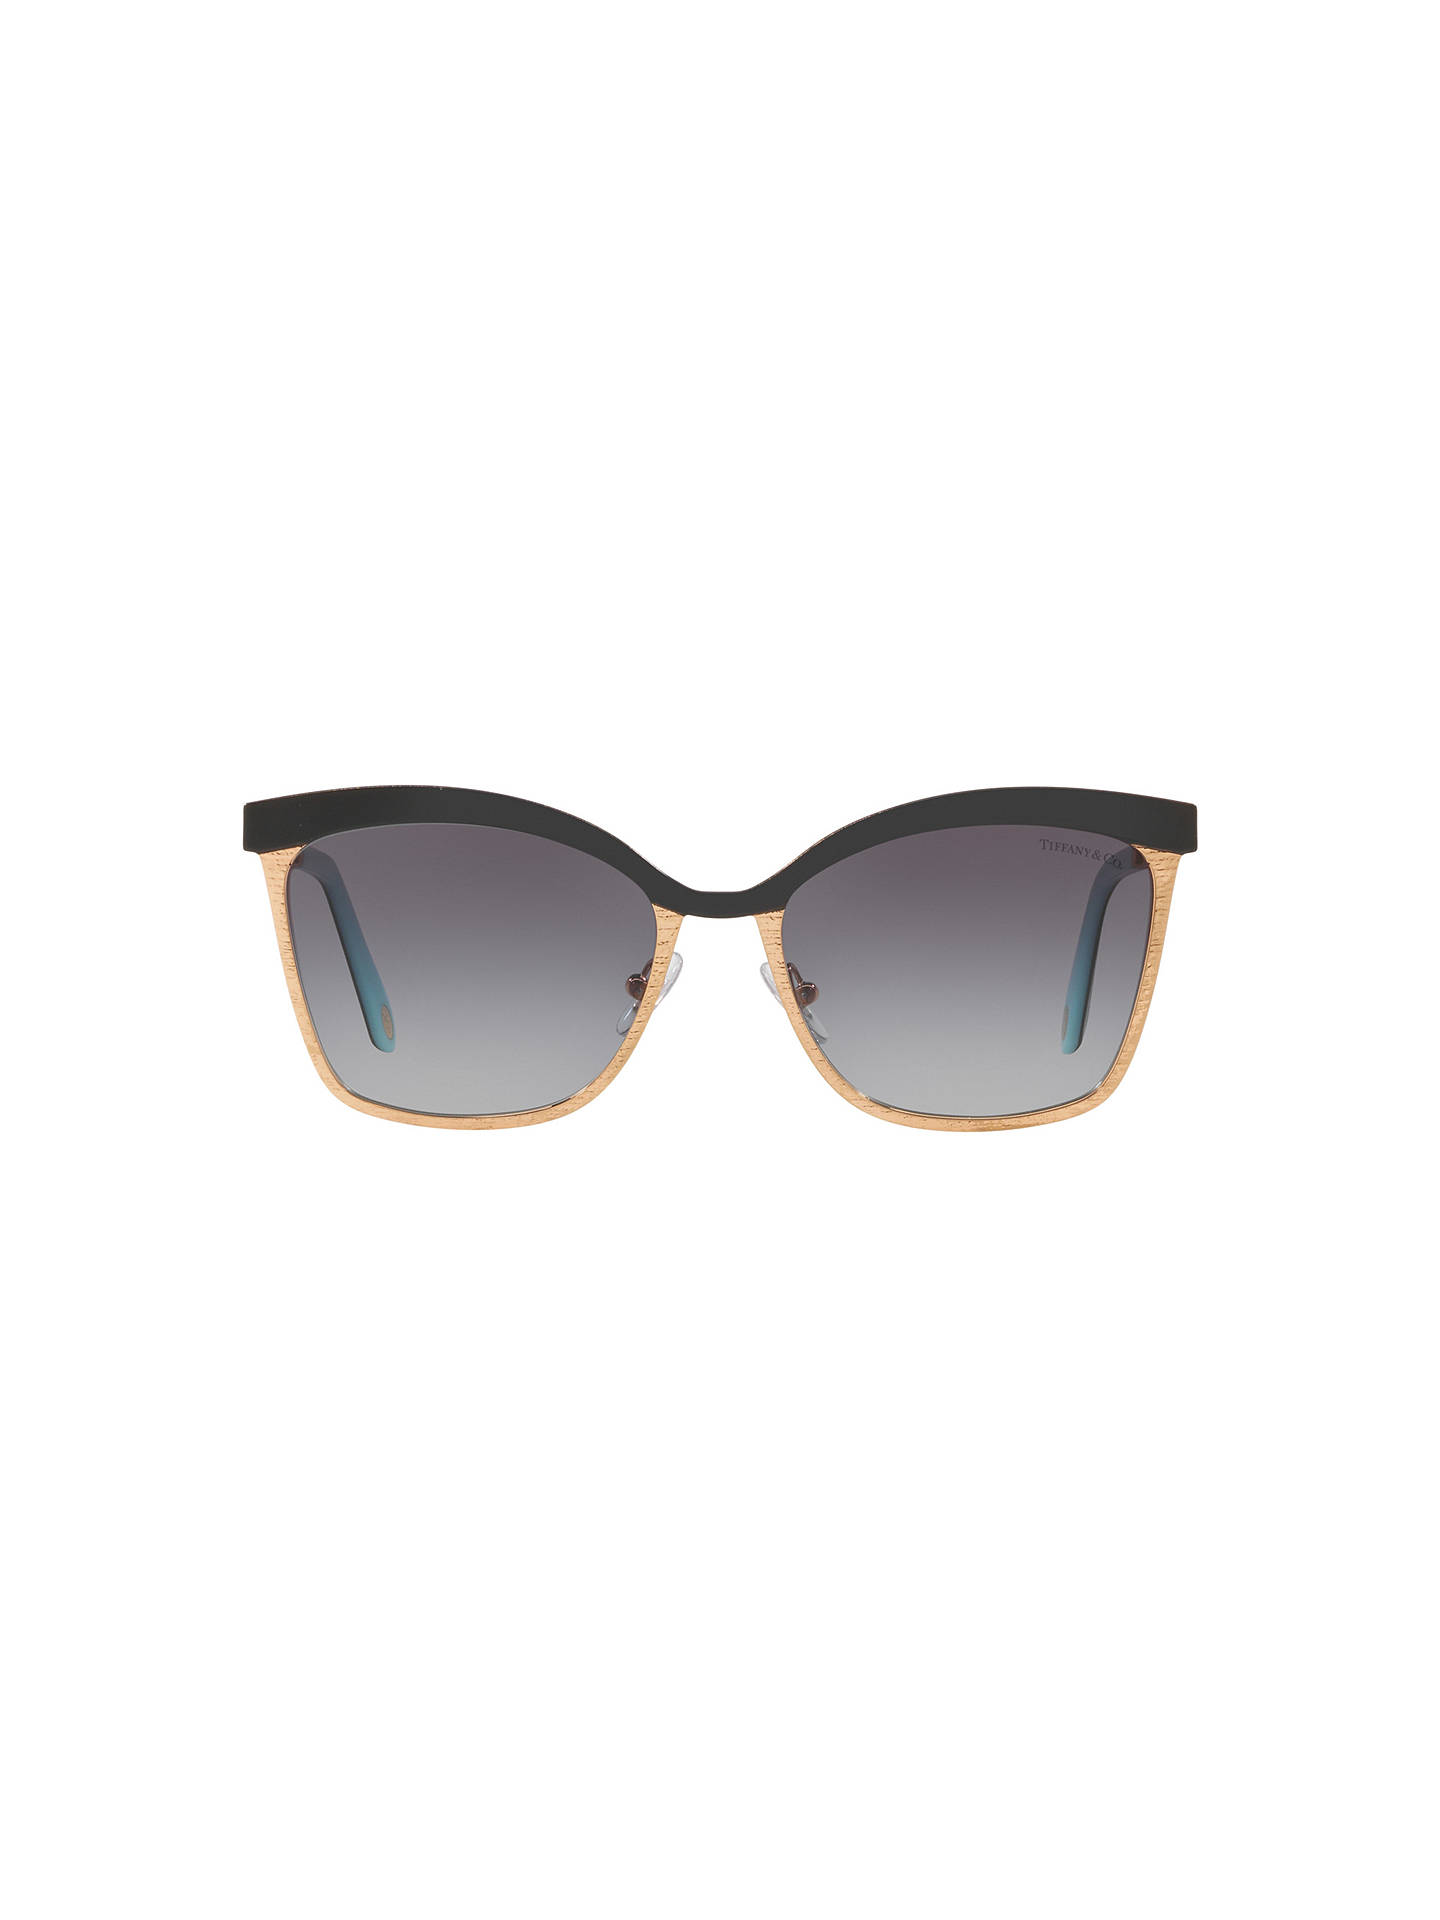 Buy Tiffany & Co TF3060 Women's Square Sunglasses, Gold/Grey Gradient Online at johnlewis.com